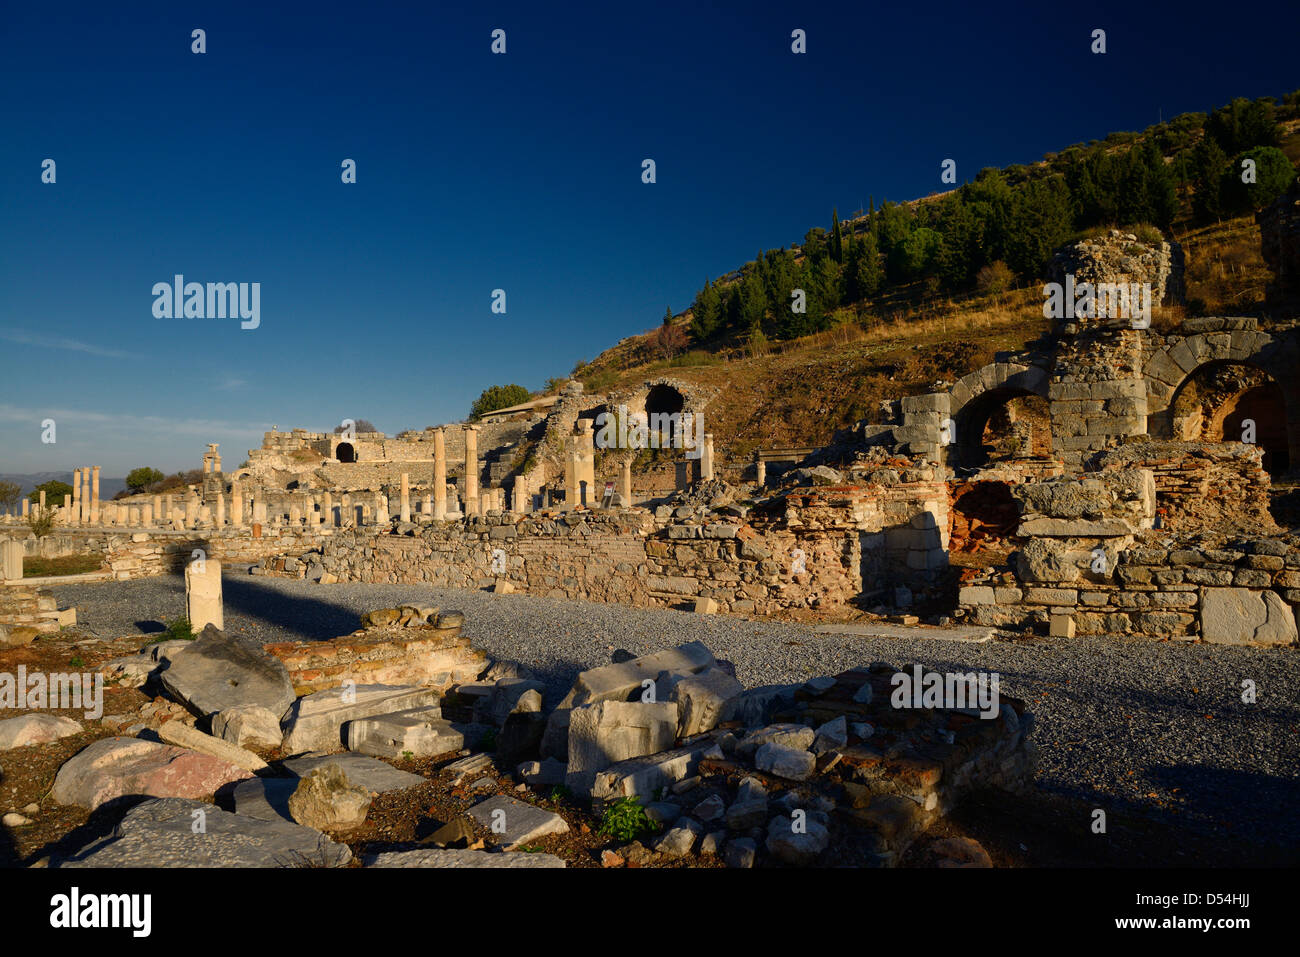 Basilica stoa royal porch at the state Agora with the Odeon at left and gymnasium at right in ancient Ephesus Turkey - Stock Image